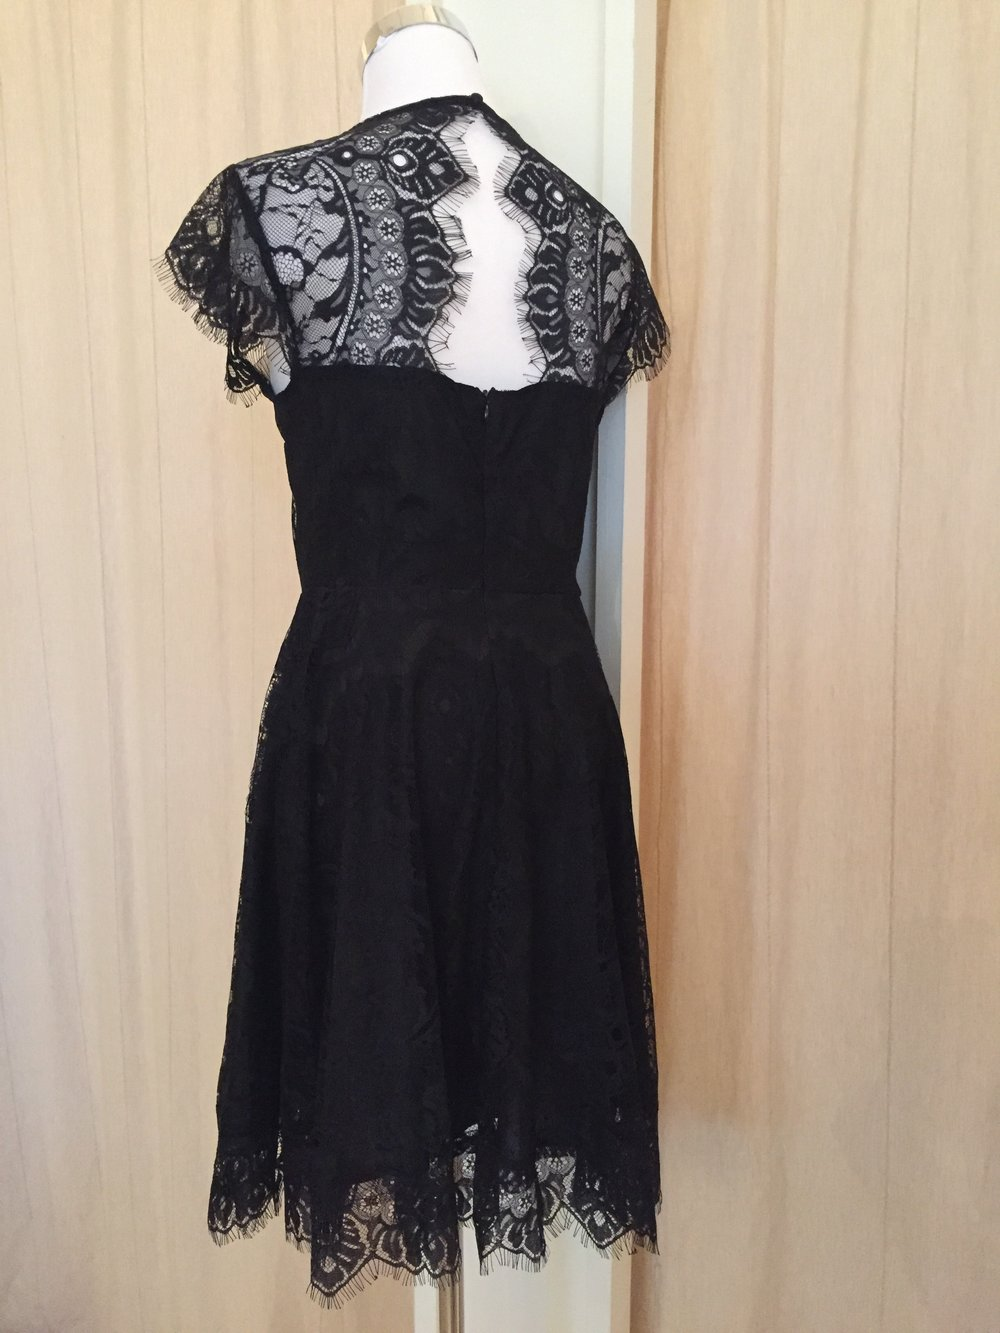 Black lace dress $64